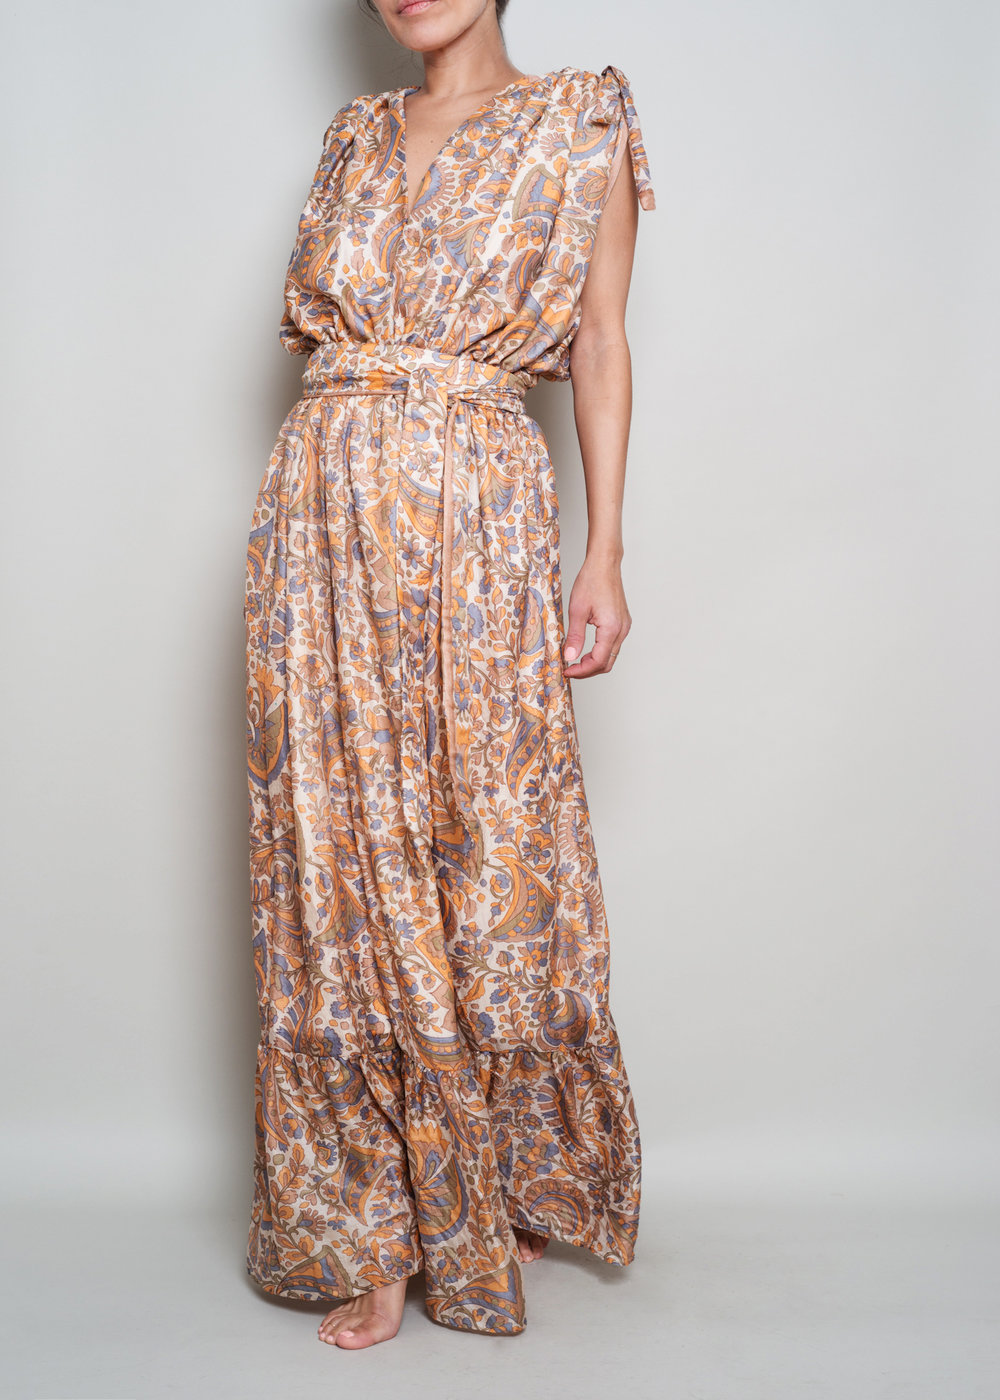 Le Marie Collection One of a Kind Bohemian Silk Sari Maxi Dresses Sustainable Fashion032.JPG